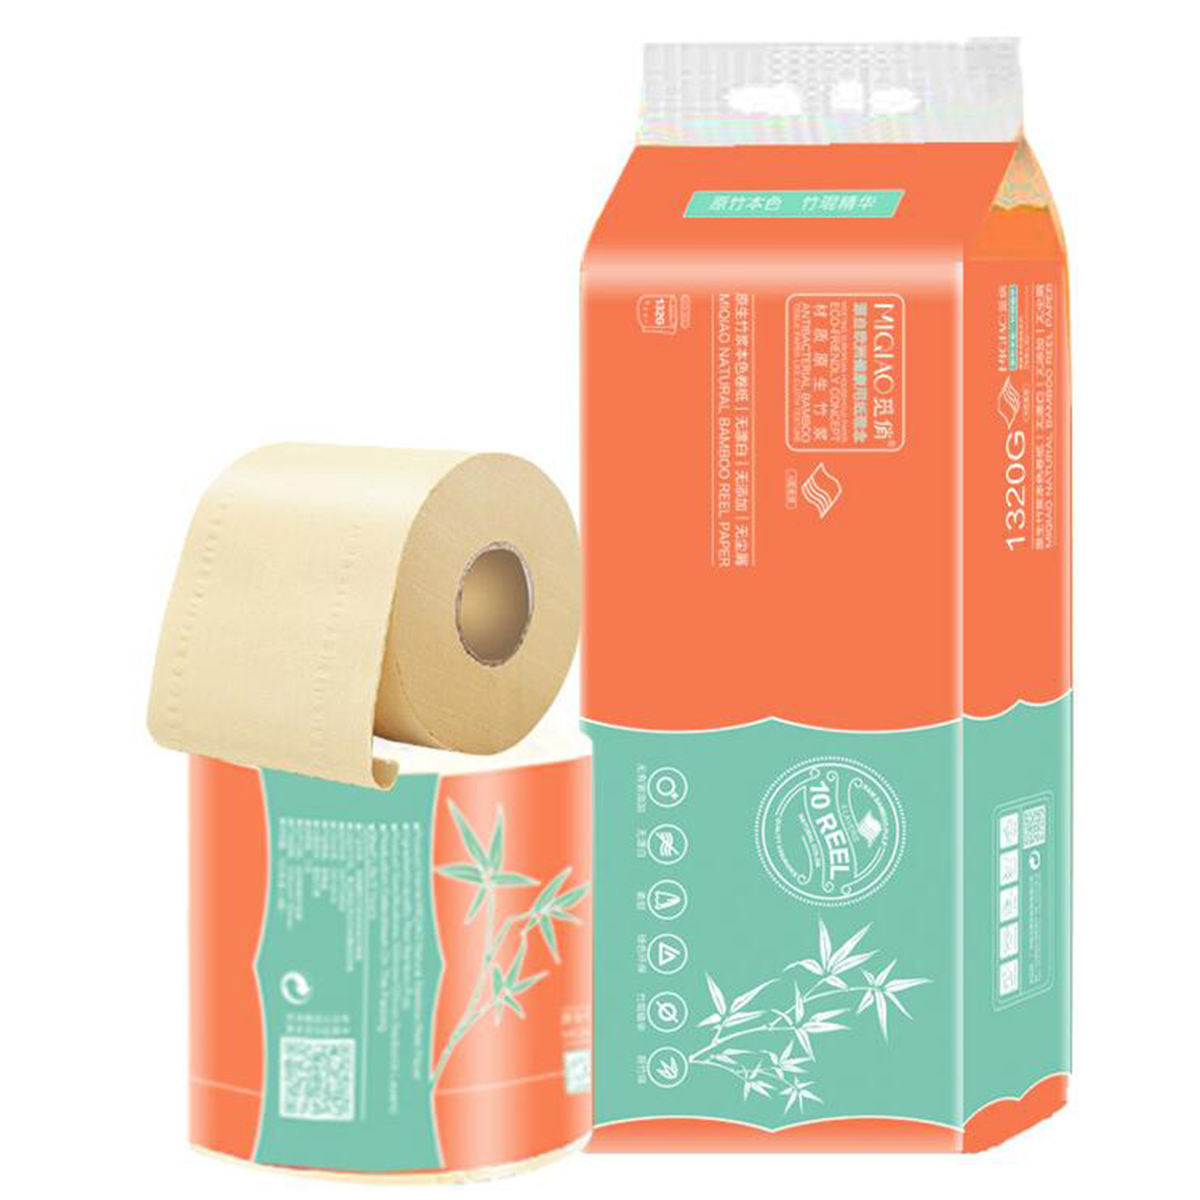 New Durable10 Rolls Of Toilet Paper Home 4-Layer Native Wood Pulp Paper Tissue Soft Rolling Paper 132g Per Roll Core Roll Paper